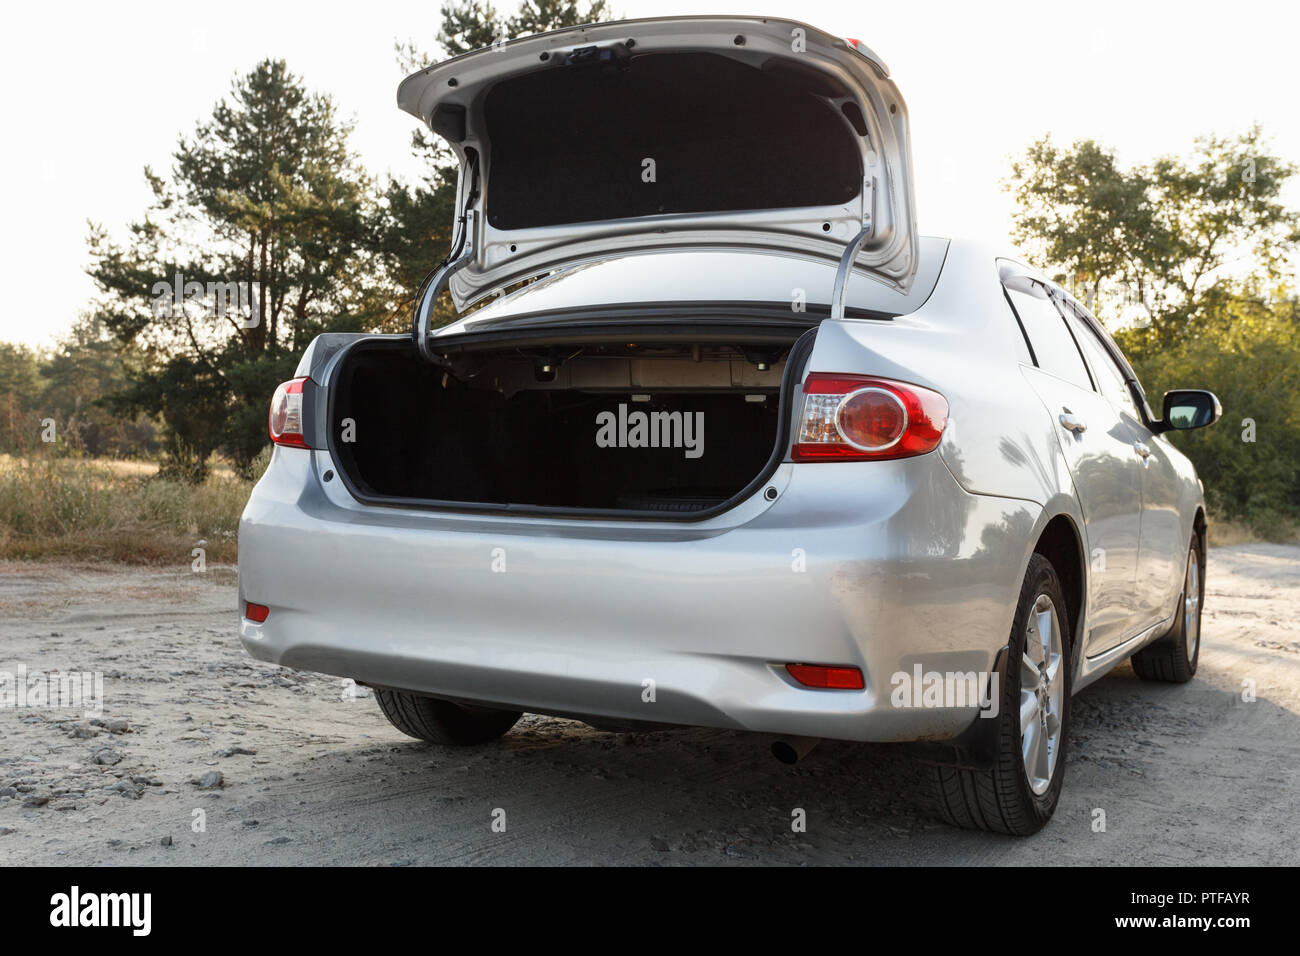 DNIPRO, UKRAINE - SEPTEMBER 01, 2018: TOYOTA COROLLA PARKED IN THE FOREST, TRAVEL STOP, OPEN TRUNK - Stock Image